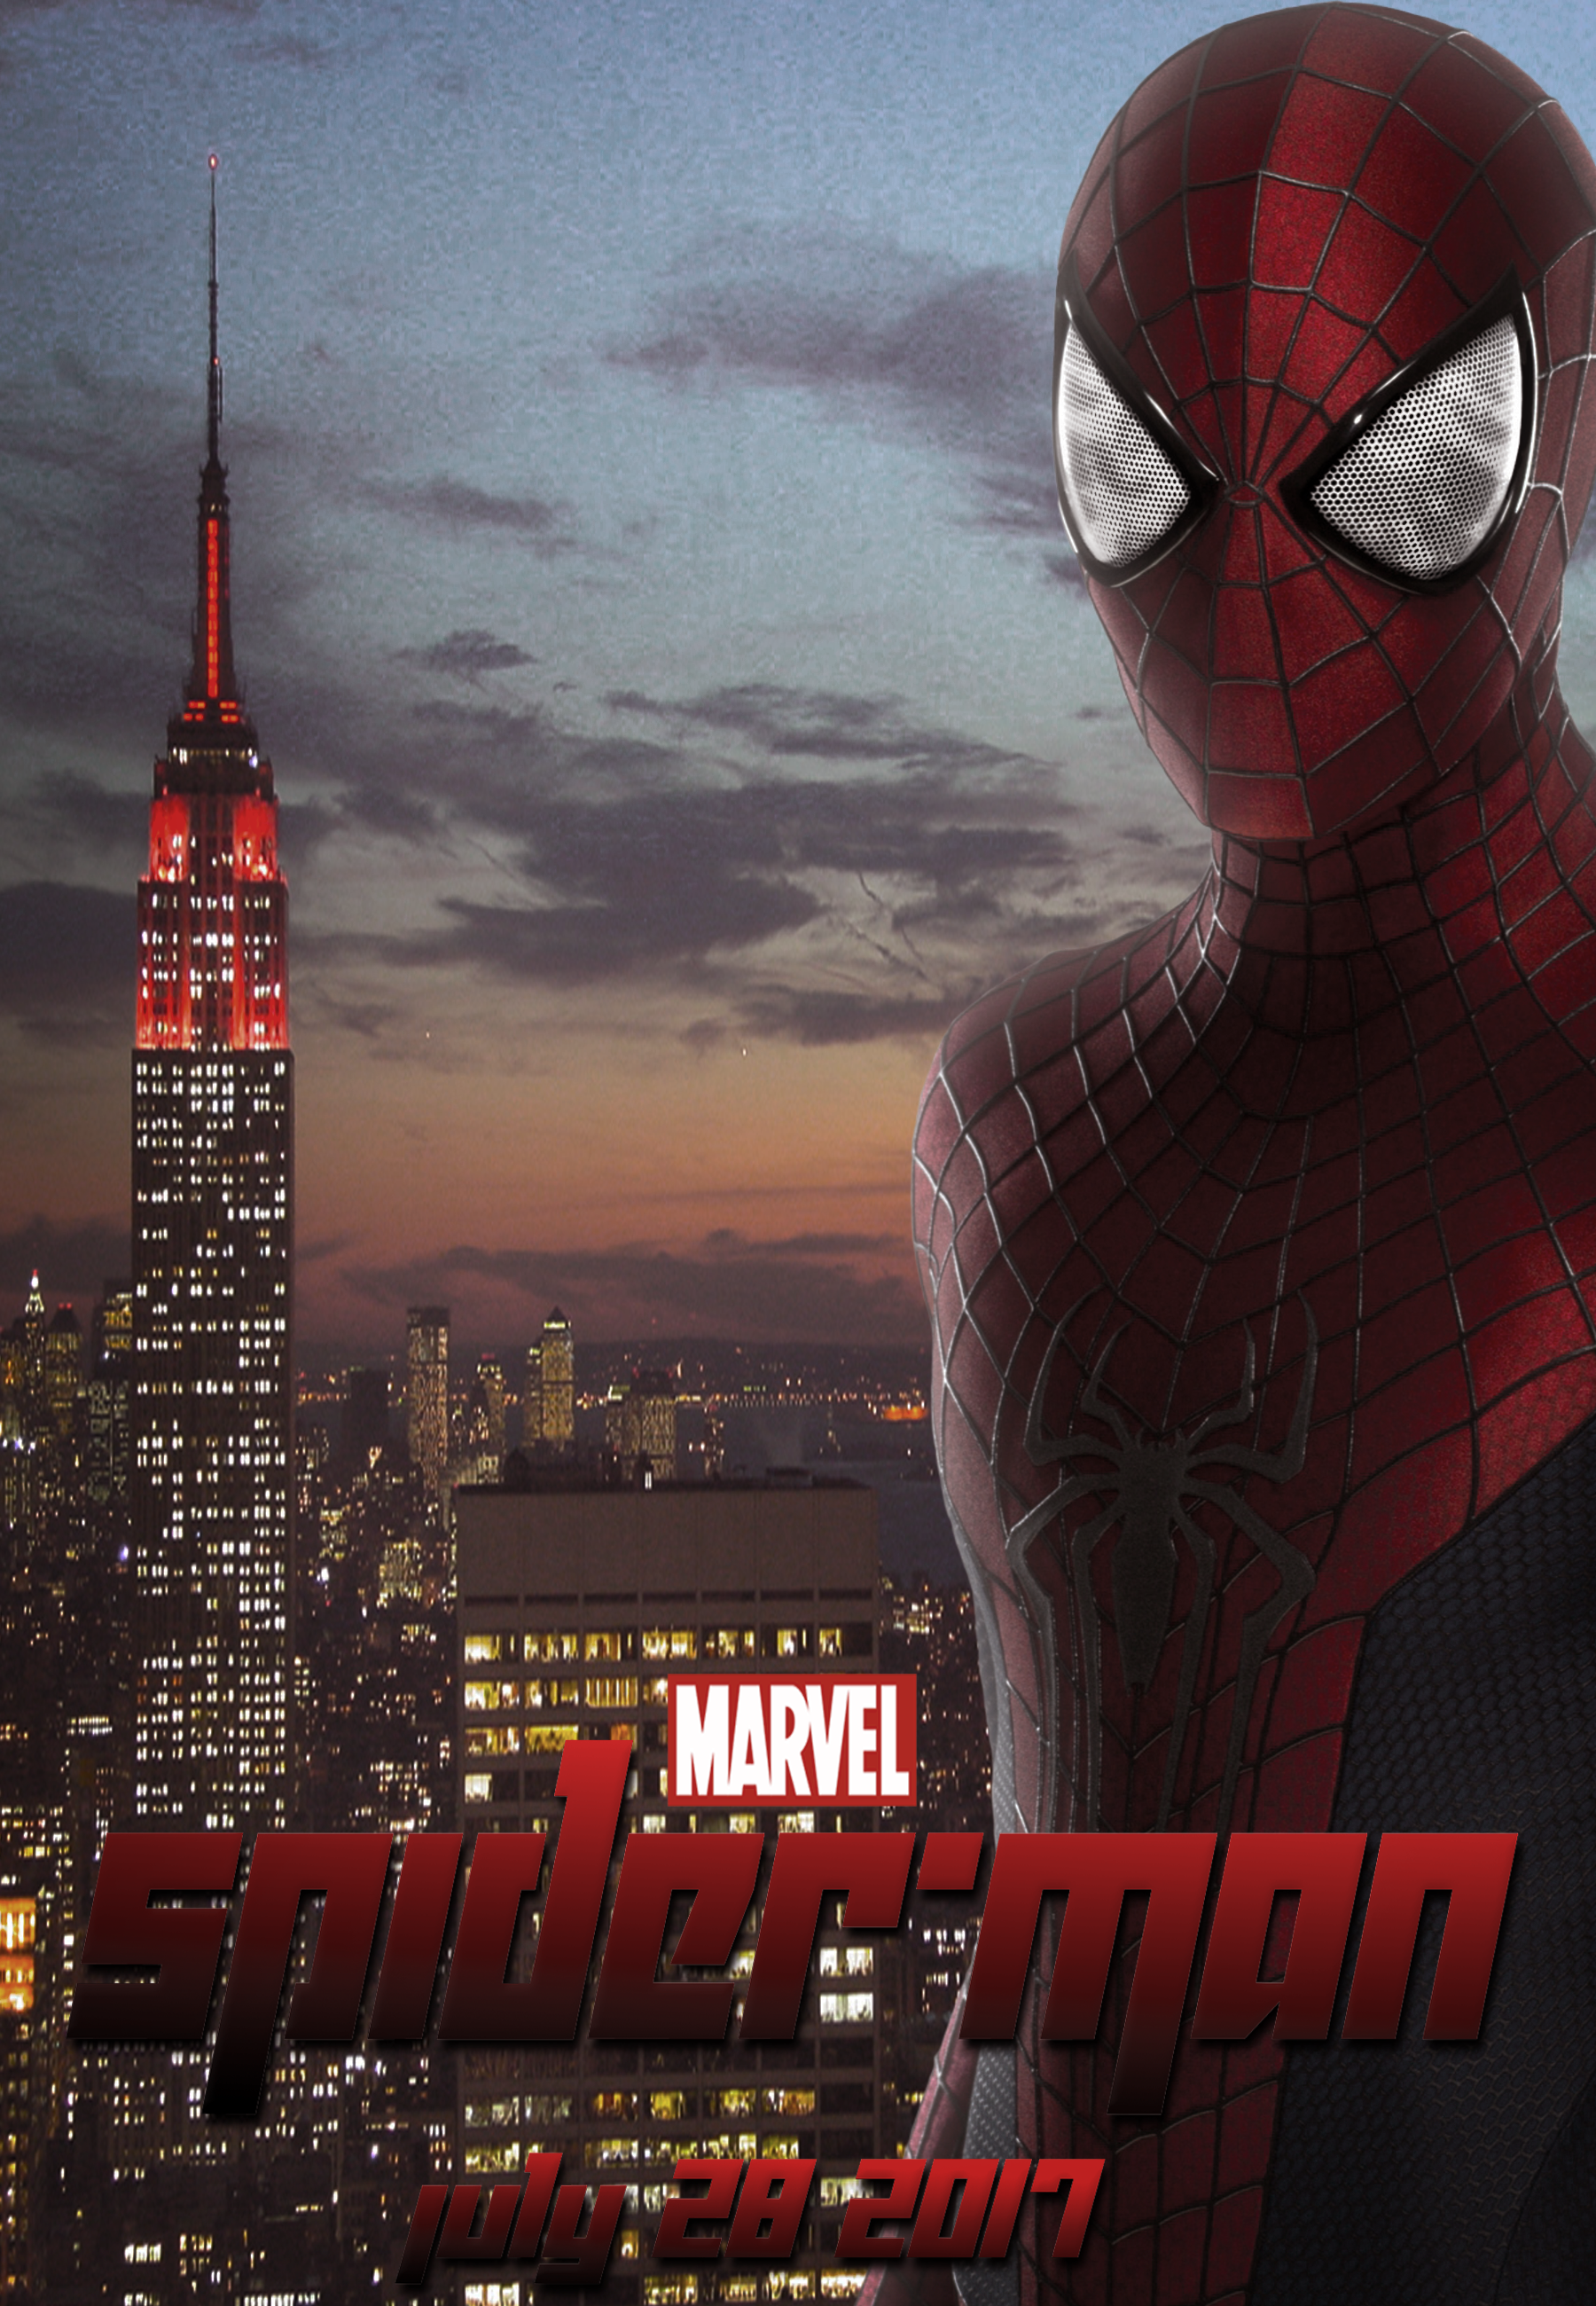 Spiderman 2017 Movie Fanmade Poster by Digi-TheSaiyan on ...